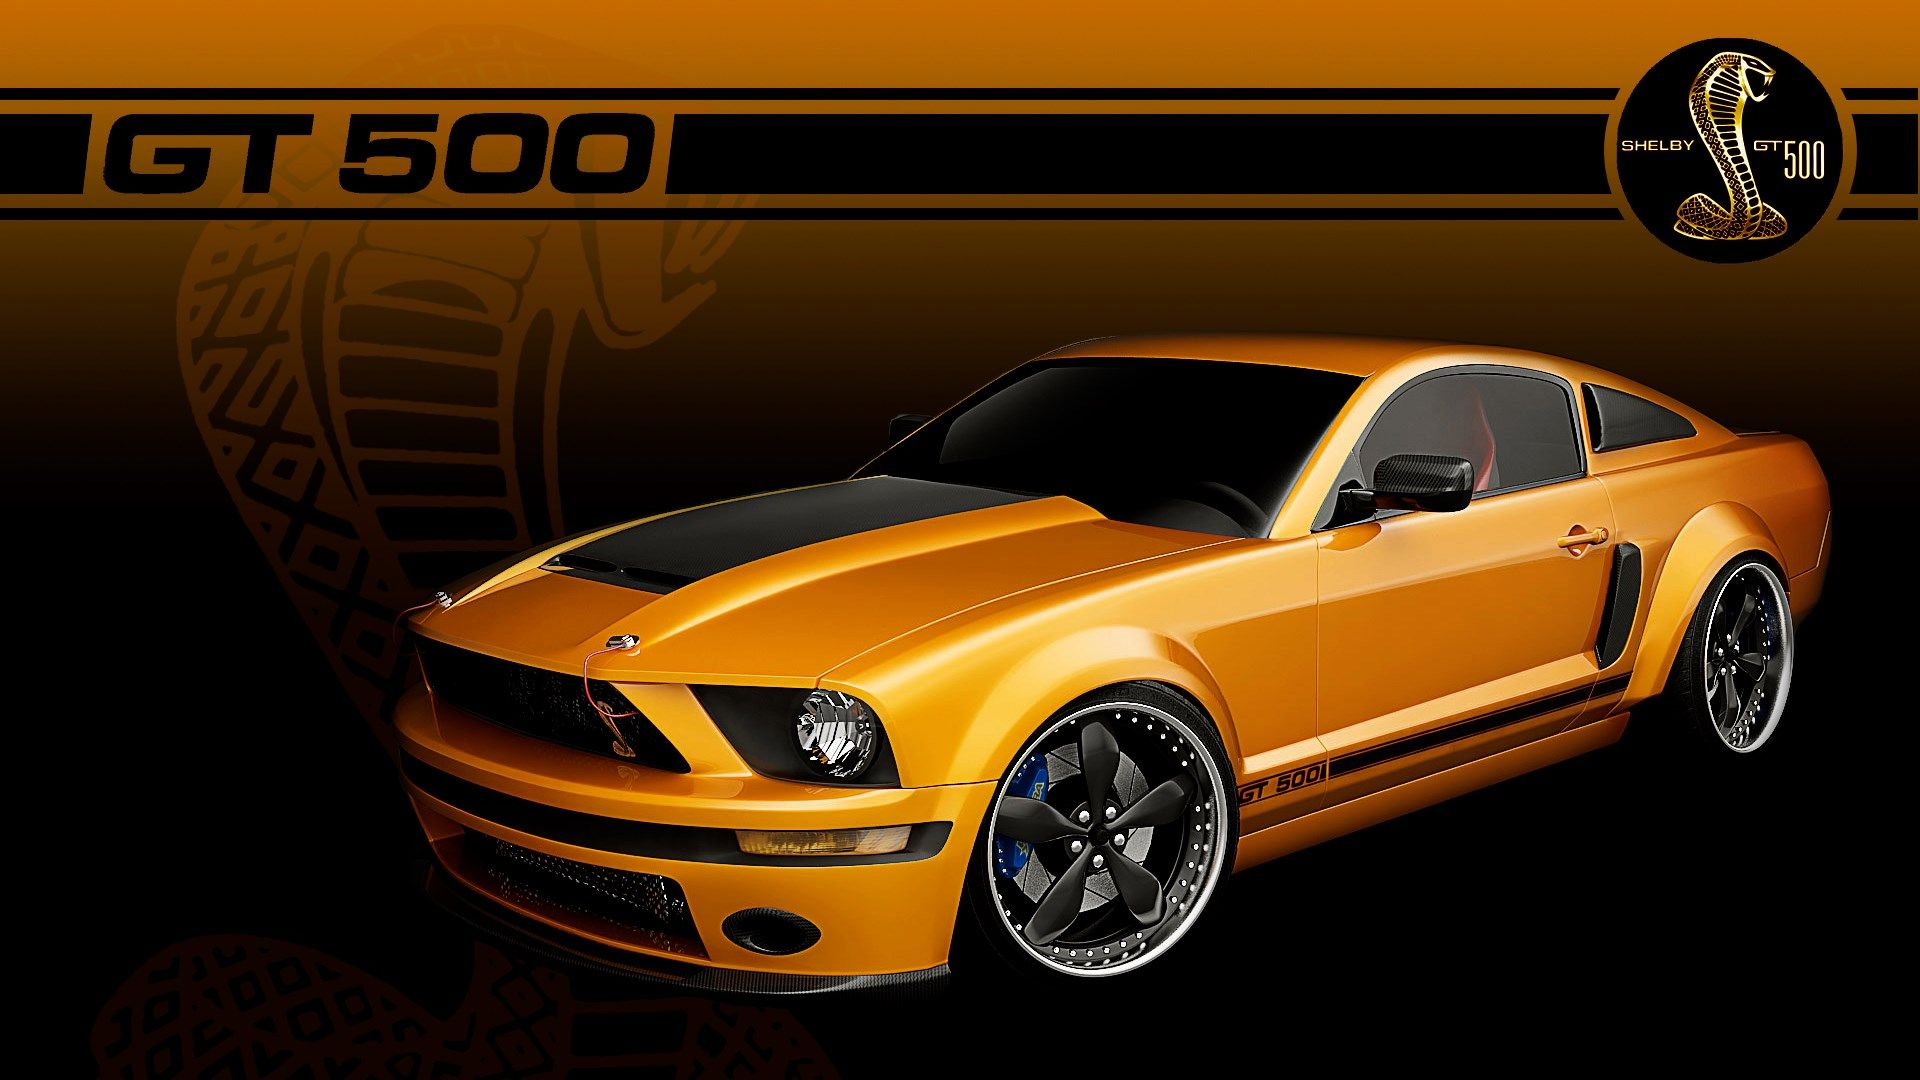 ford mustang shelby gt500 pic by Dell Cook (2017-03-10 ...